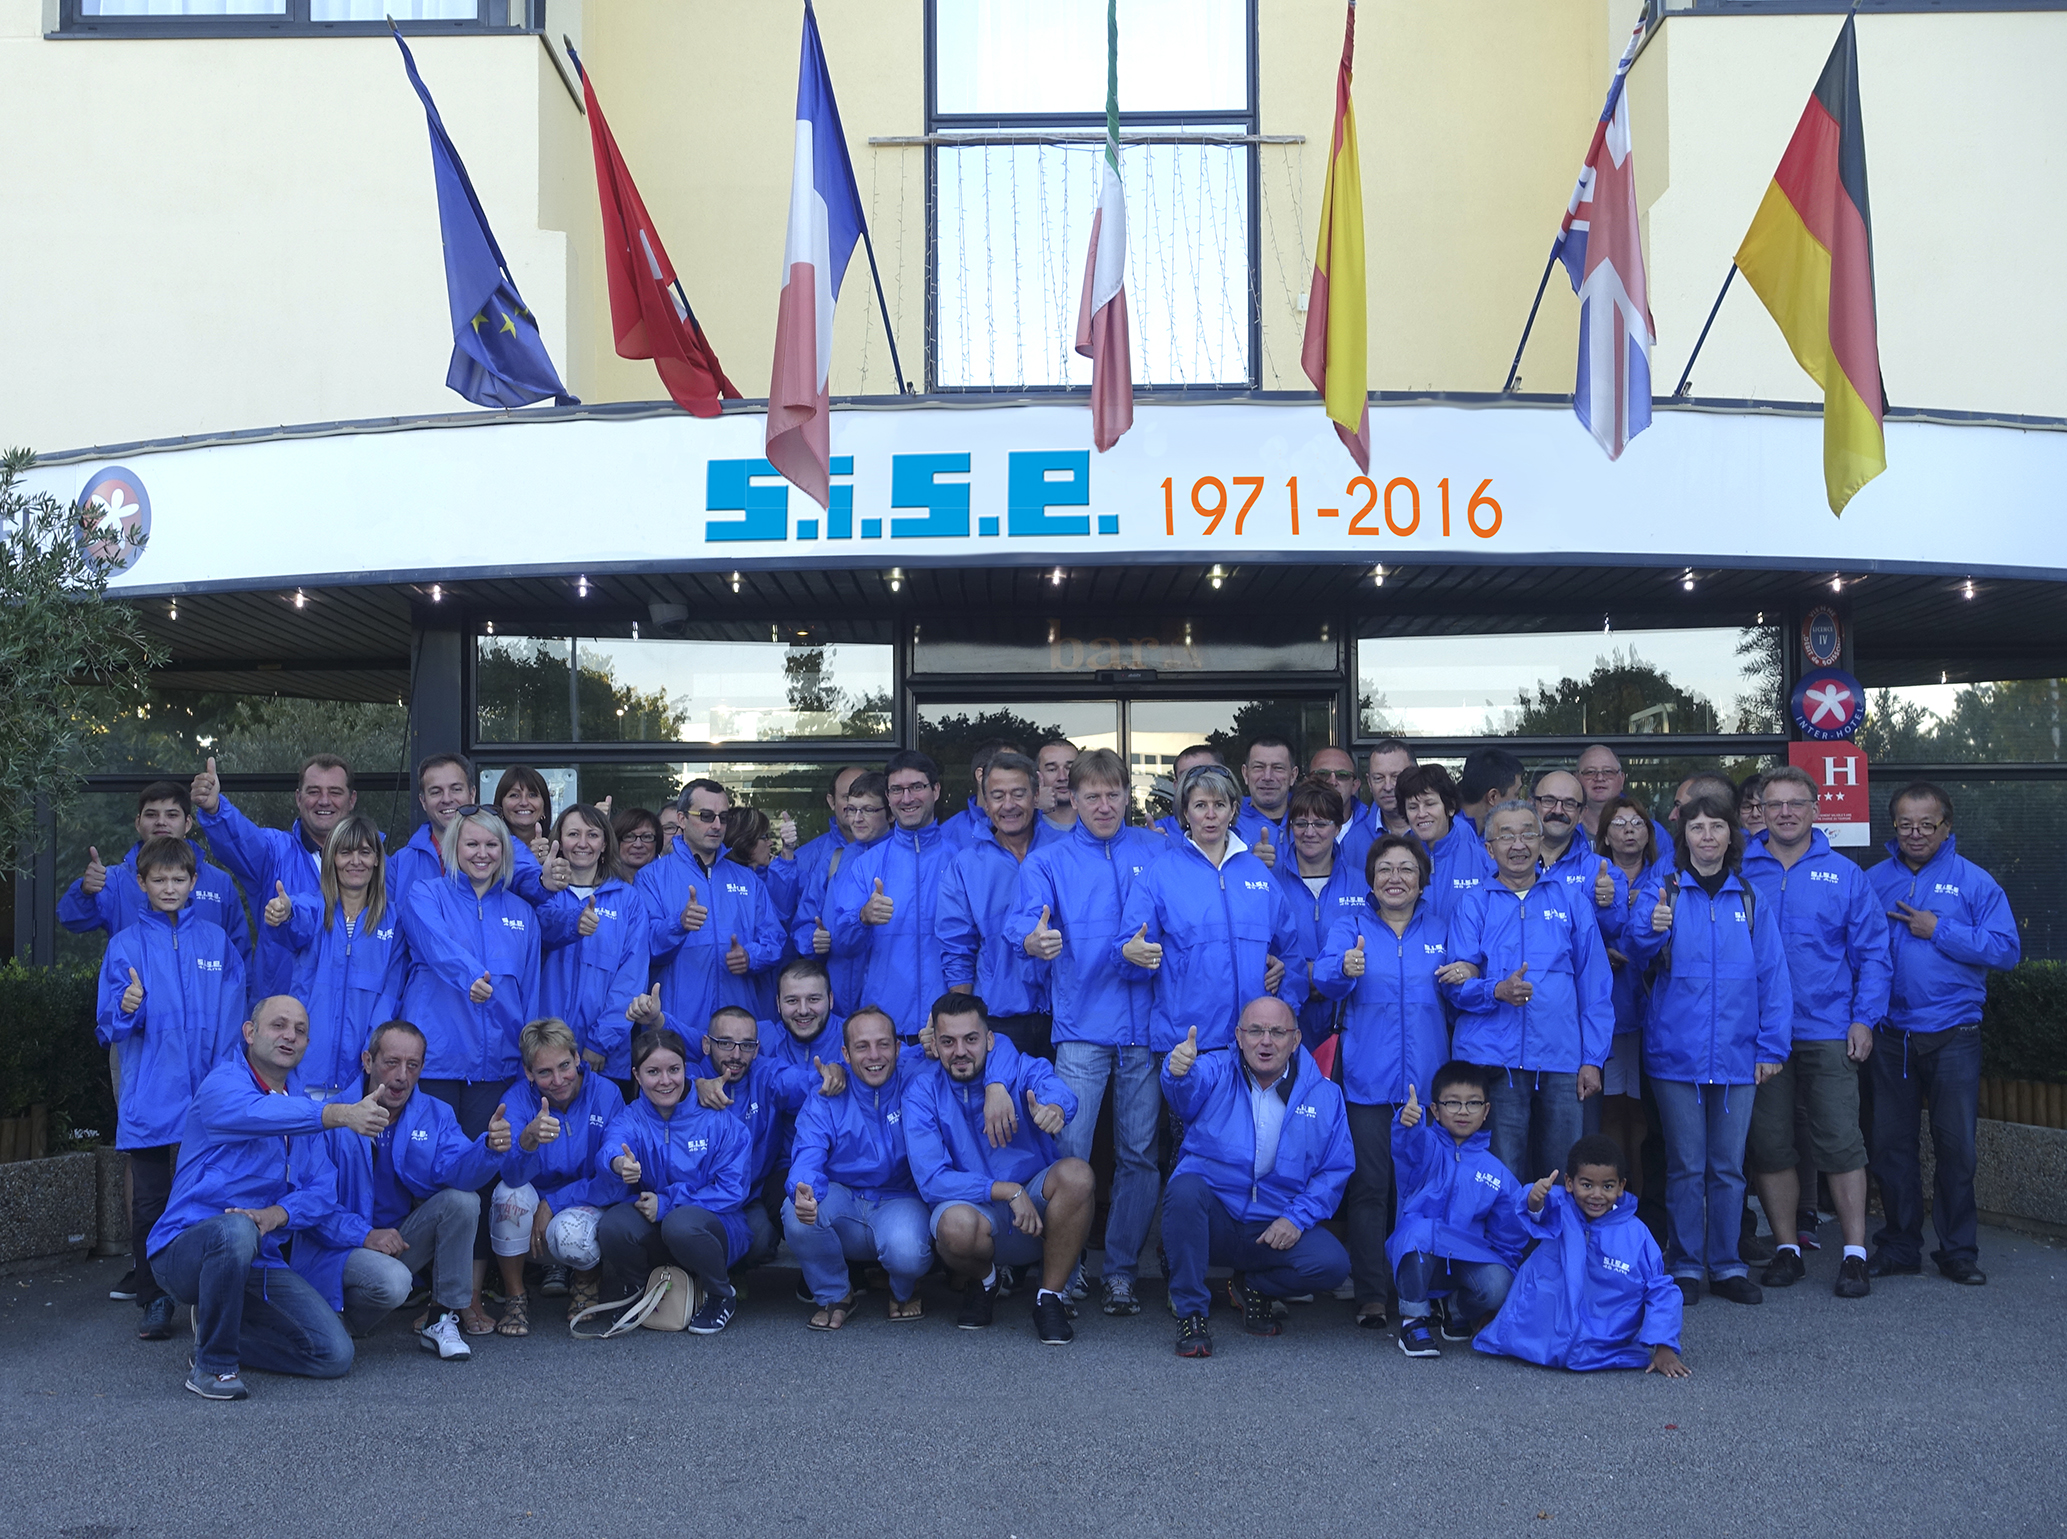 The SISE team, at your service for 45 years=